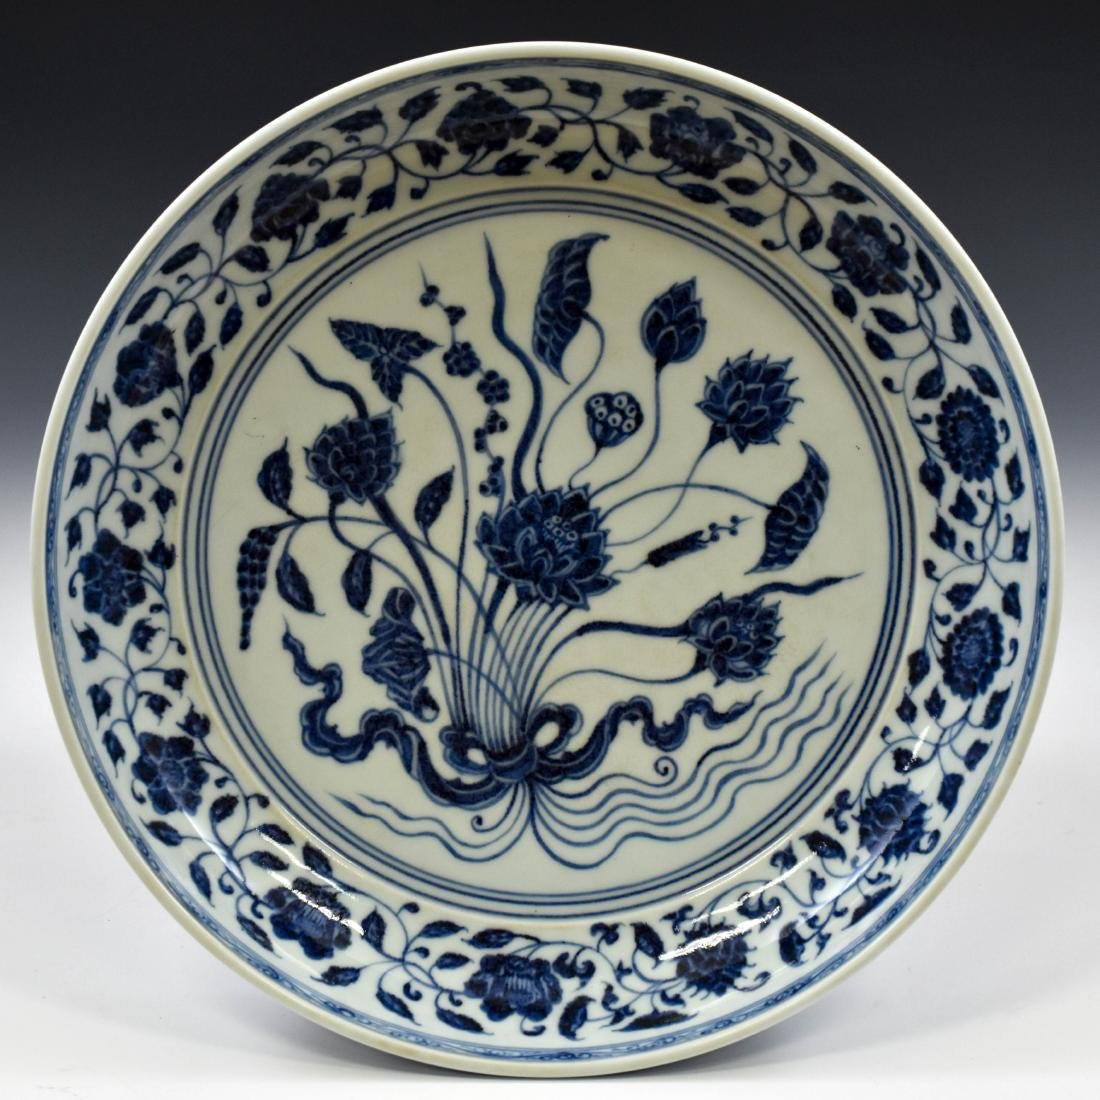 A FINE MING BLUE AND WHITE LOTUS PLATE